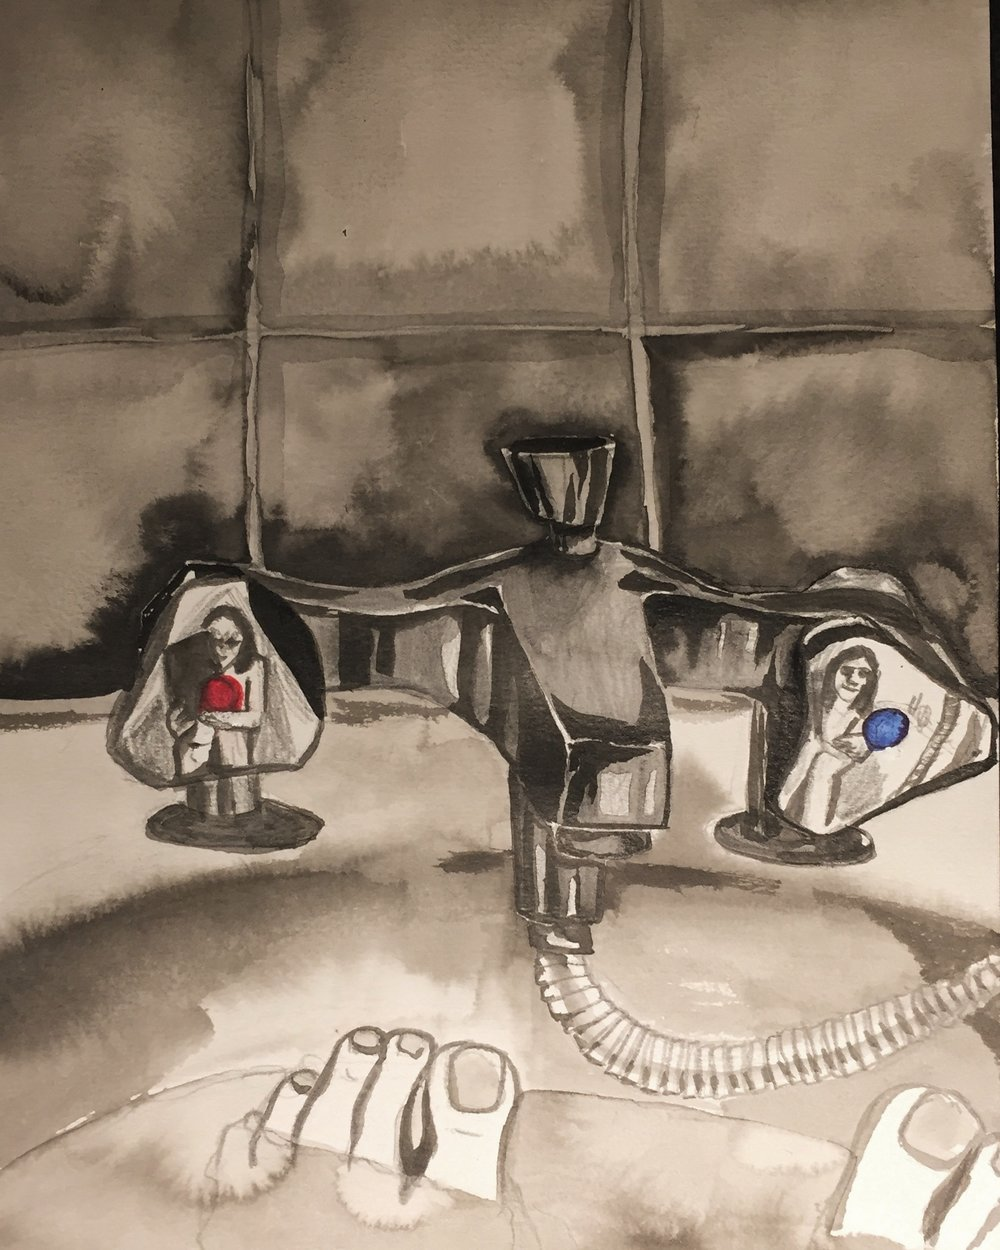 Day 5: Took my sketchbook to the bath to capture this silly double self-portrait in the metal reflection of the faucet.